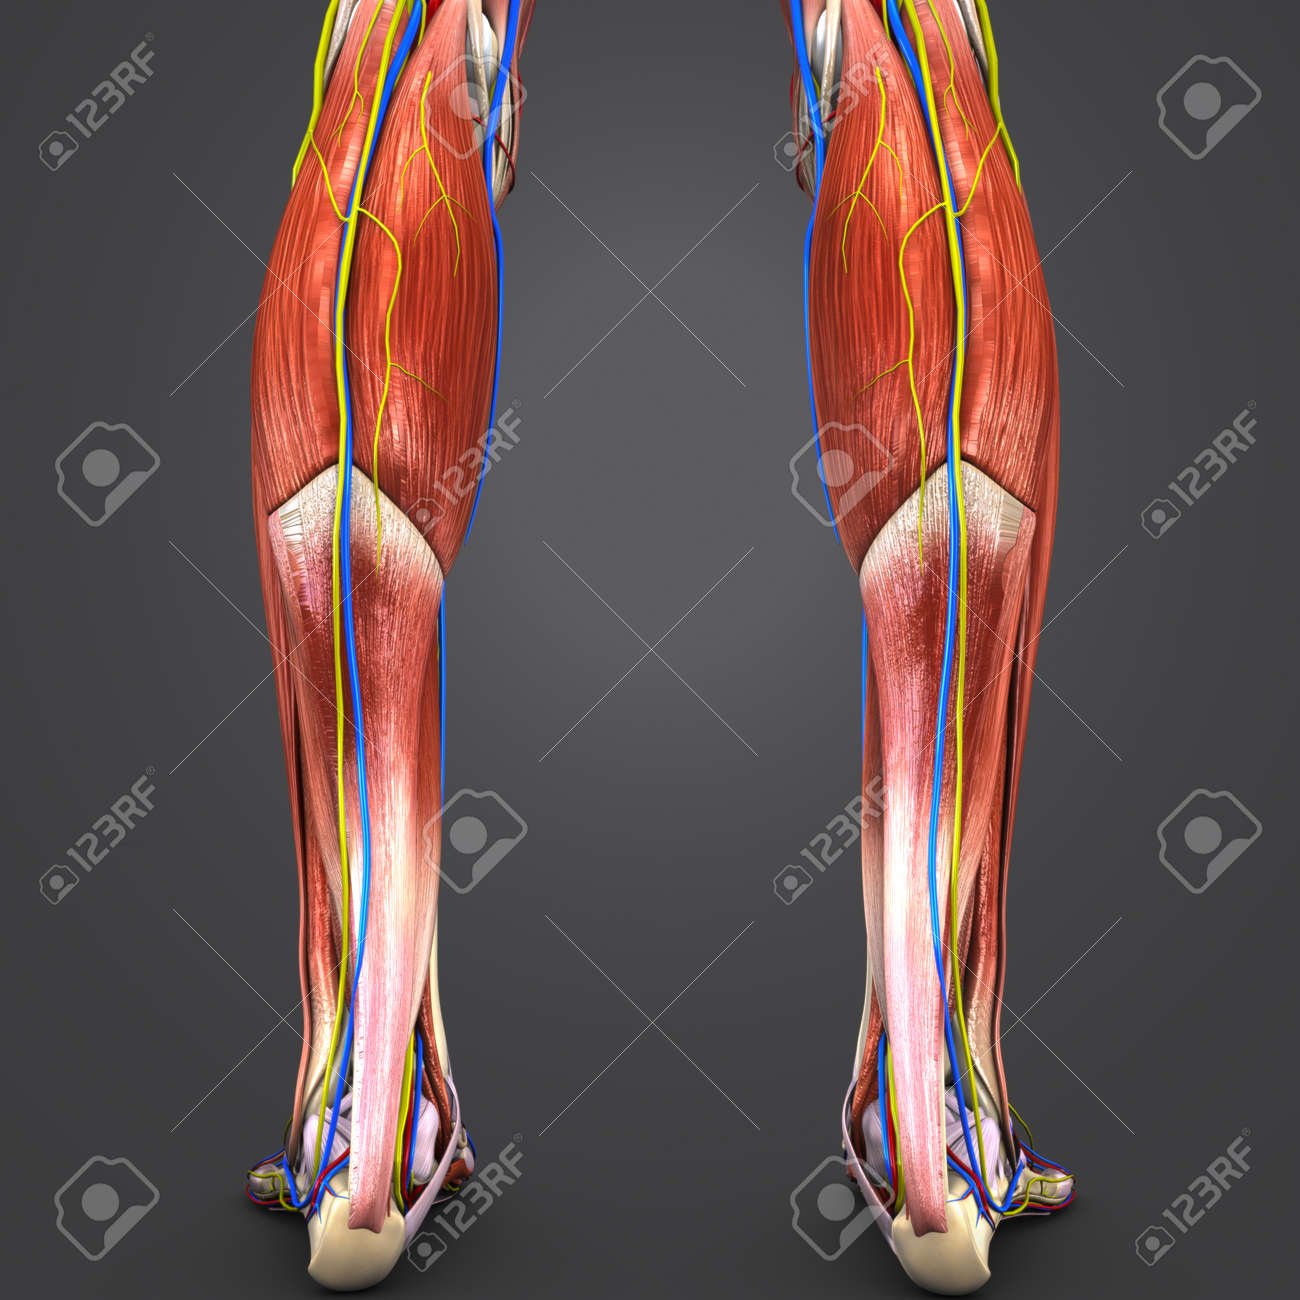 Human Legs Muscles Anatomy Posterior View Stock Photo, Picture And ...